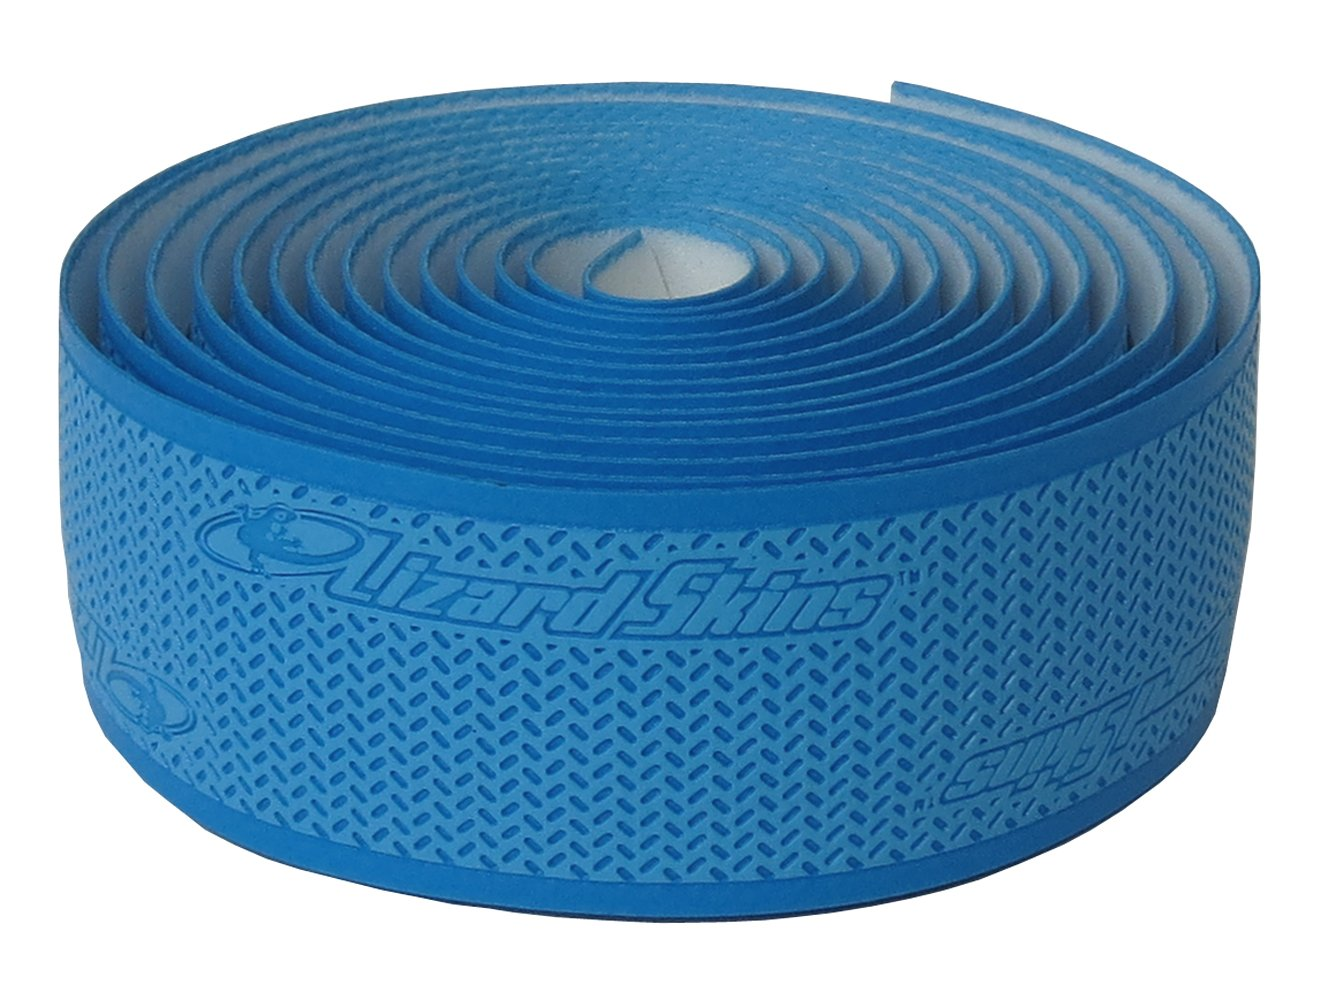 Lizard Skins Tape and Plugs Bar Tape J&B Importers Inc. 32129